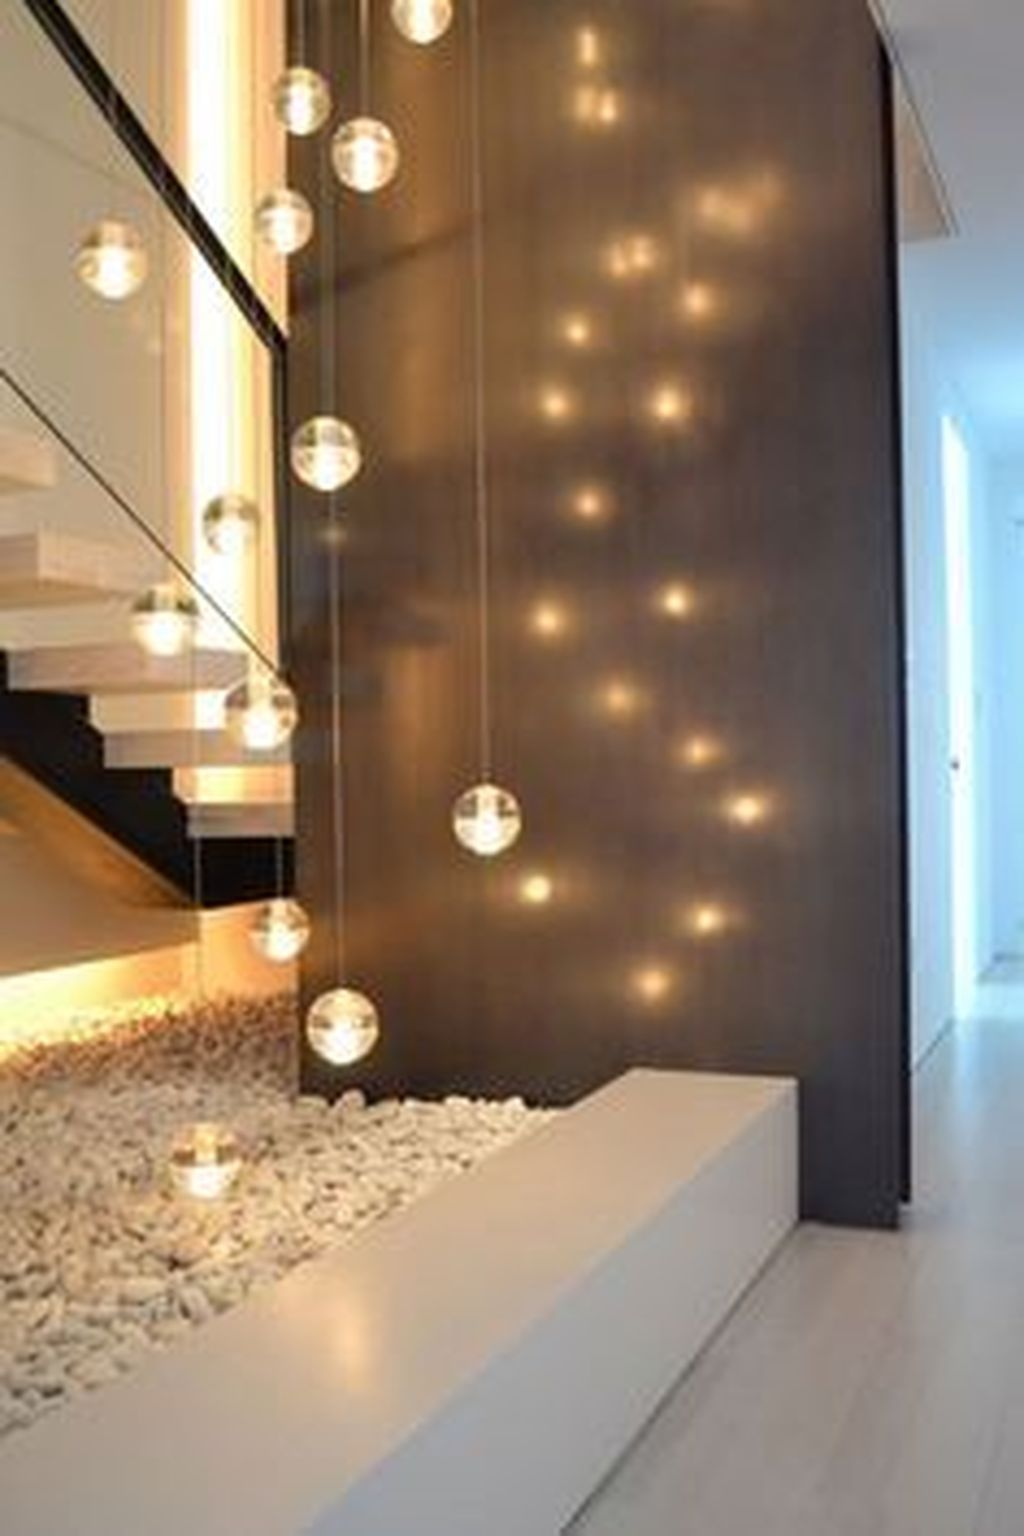 Awesome 47 Decorative Lighting Design More At Https Homishome Com 2019 05 27 47 Decorative Lighting Design Home Lighting House Interior House Design